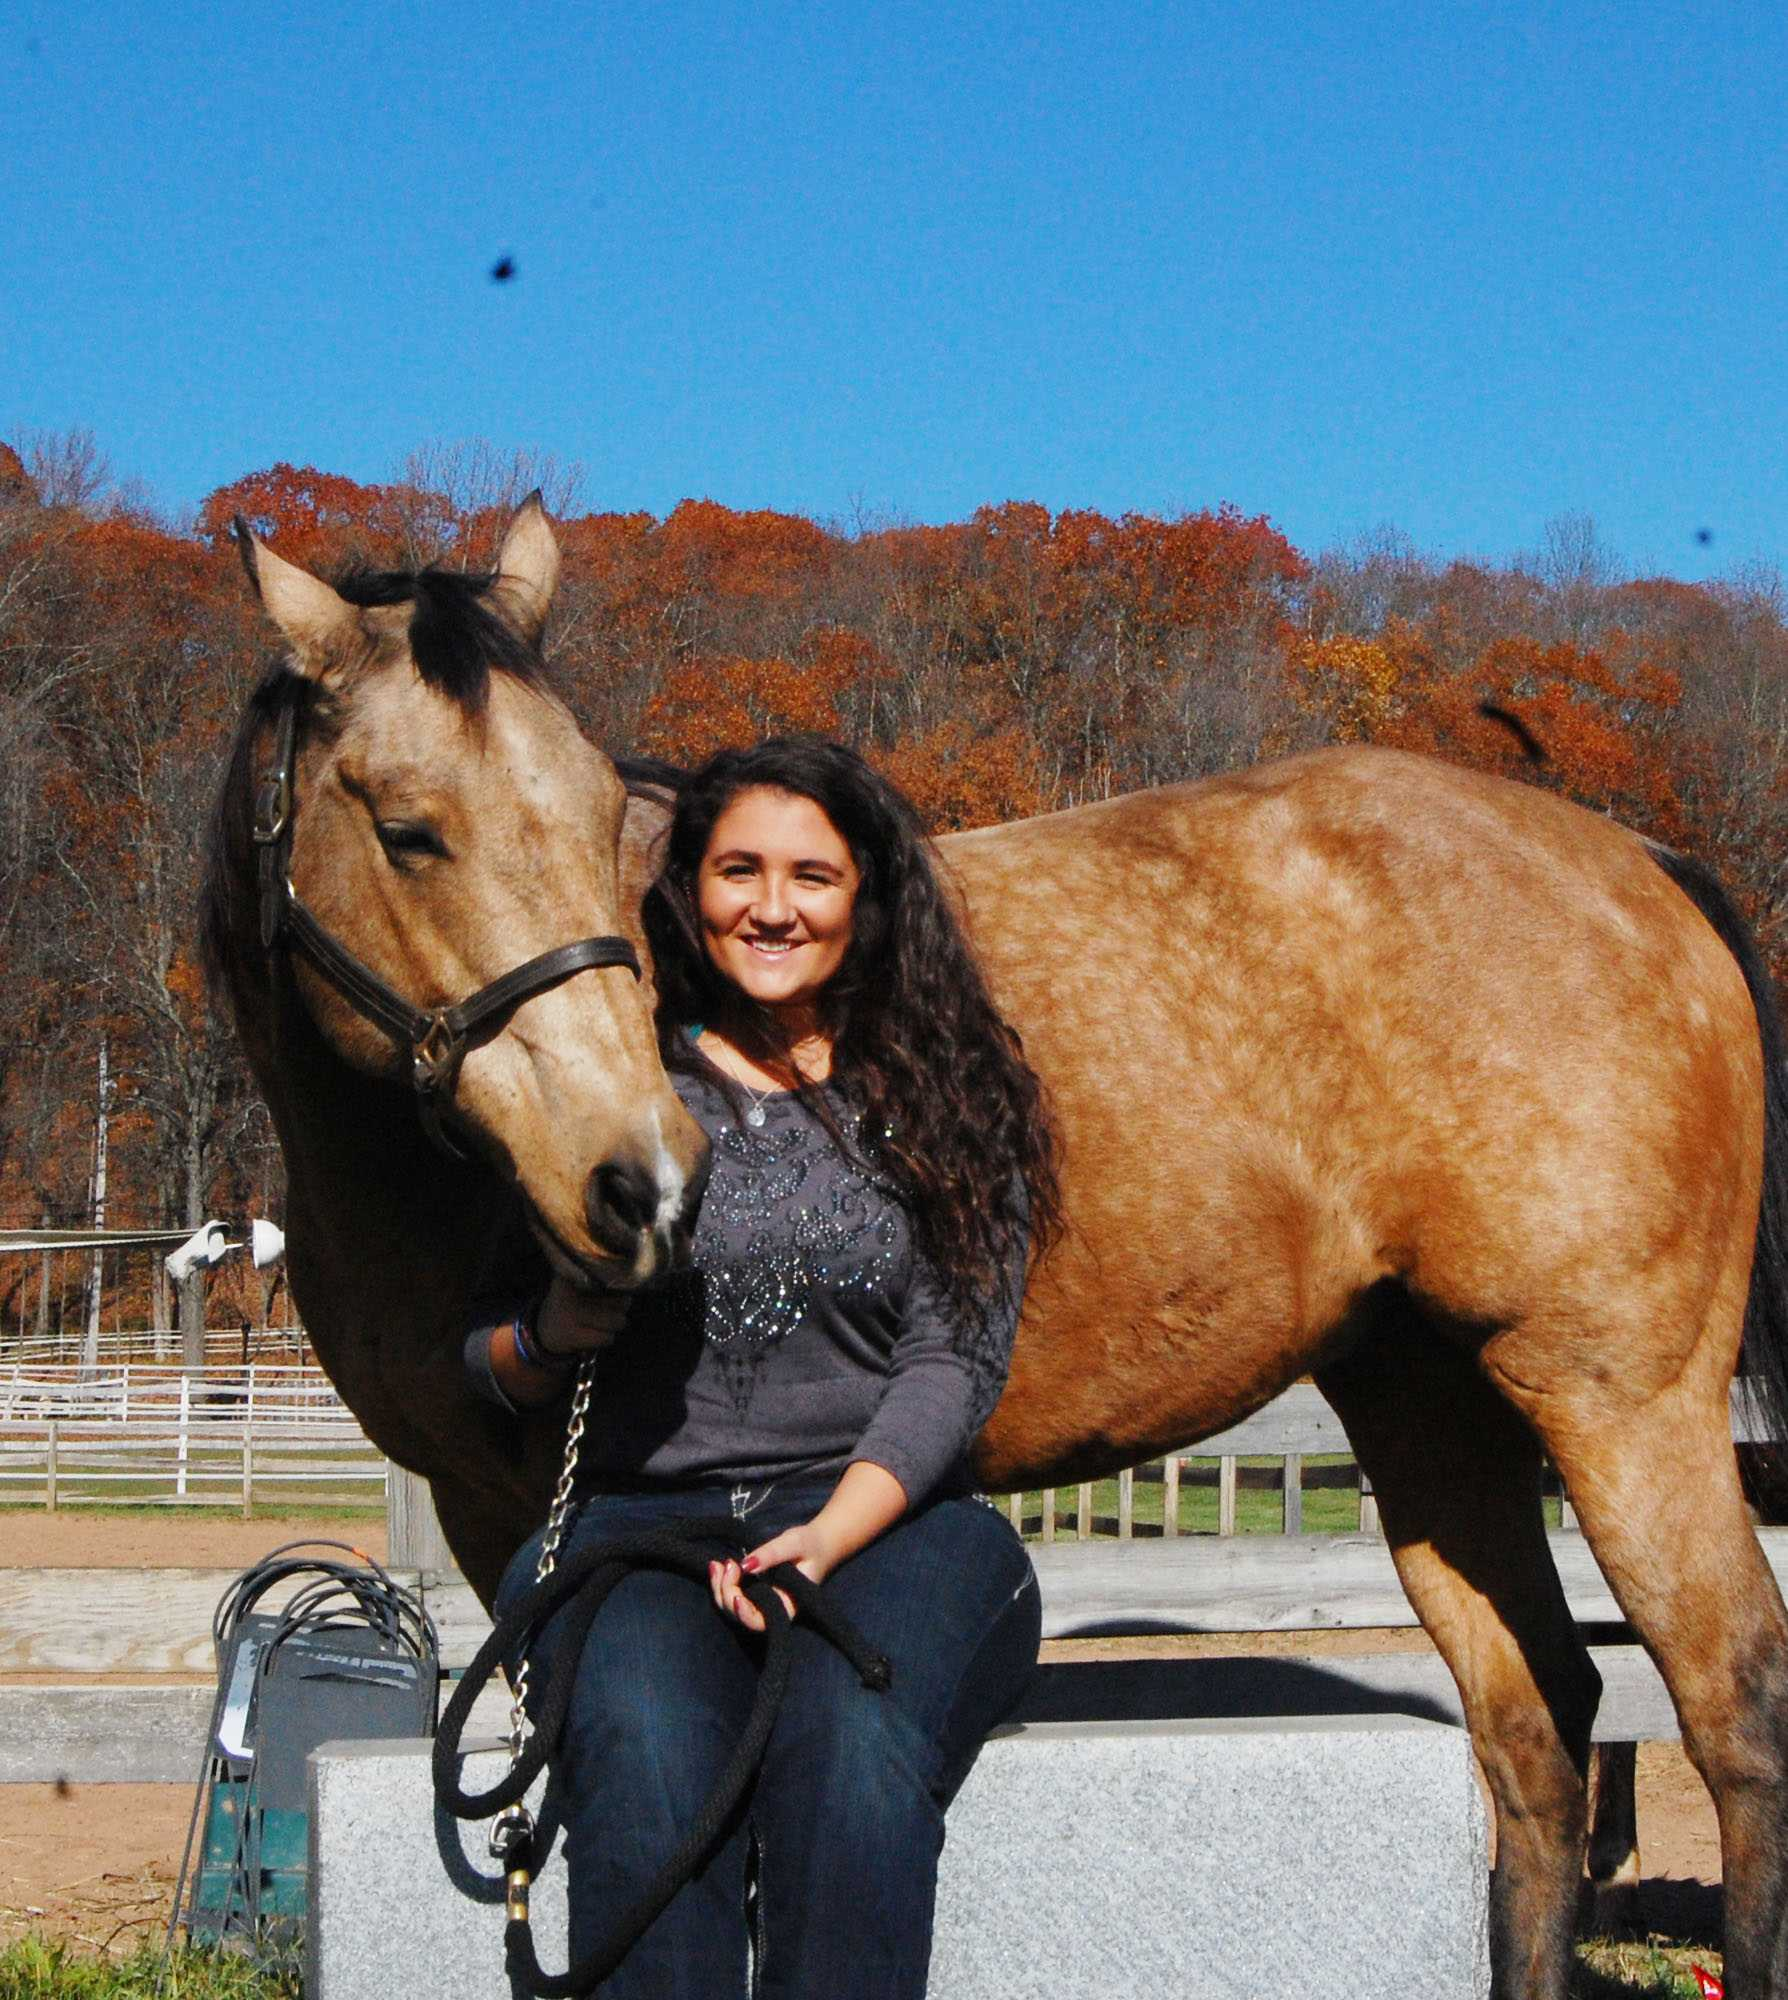 Kristy Latella shows her love for animals, especially her own horse Gunnar. Kristy believes that animal therapy is the best way to relieve stress.